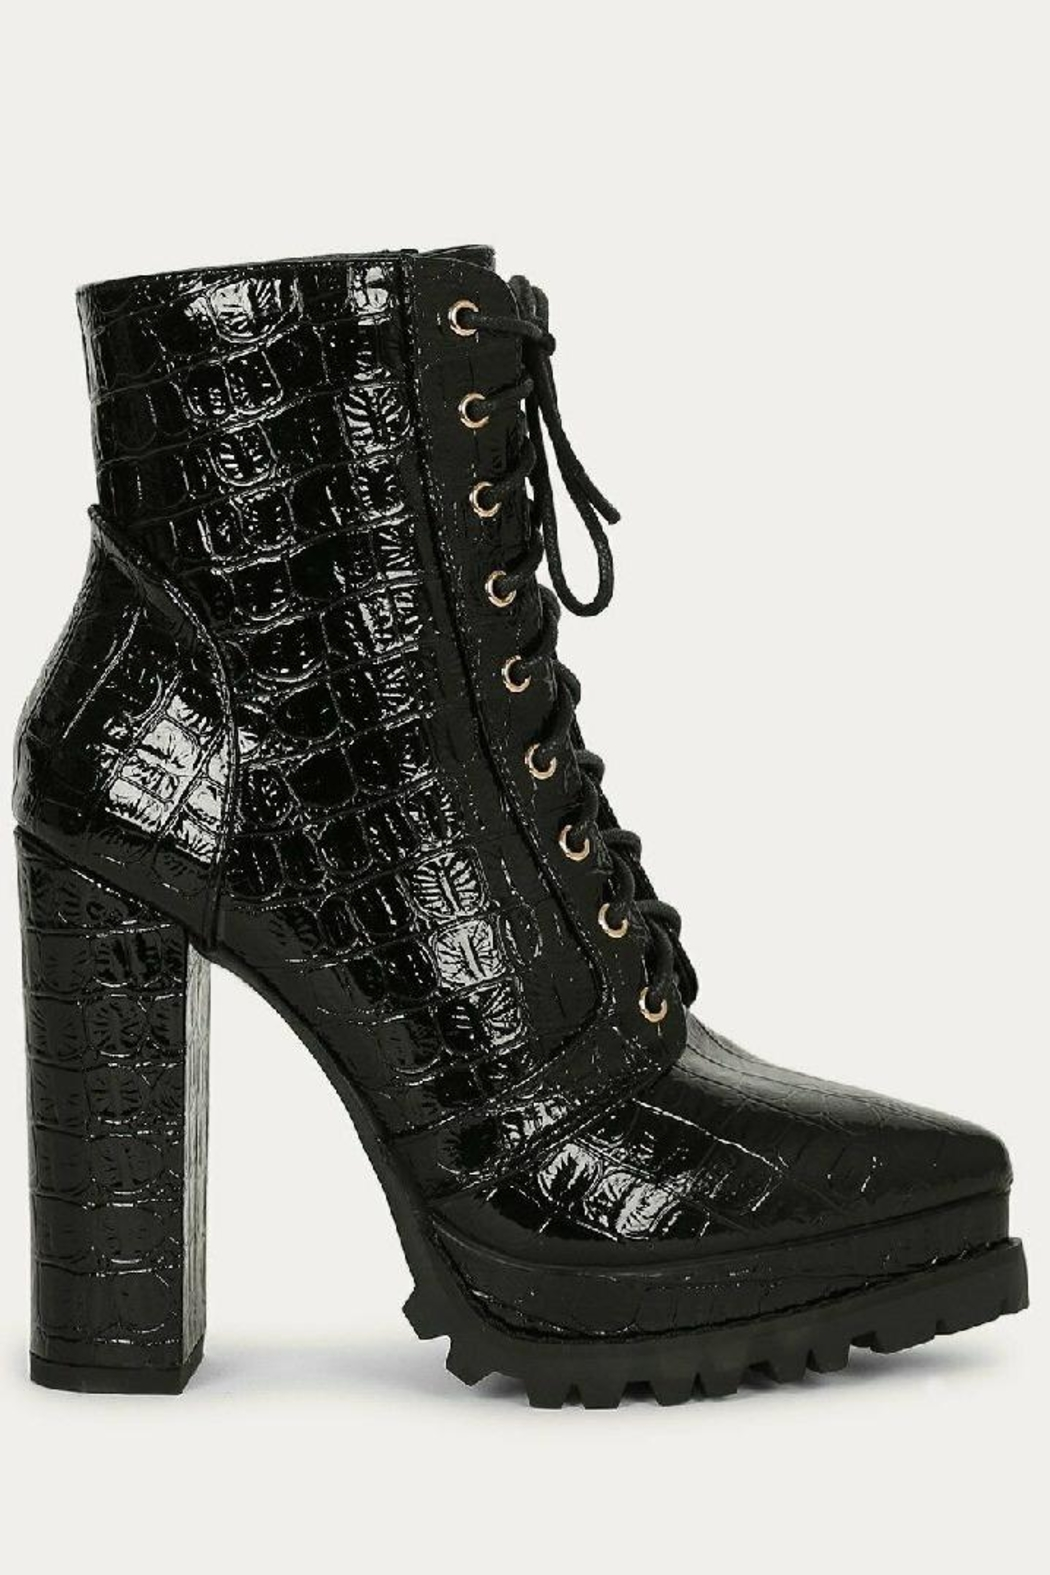 liliana Liliana Irie-1 Lace Up Booties Black Suede - Side Cropped Image